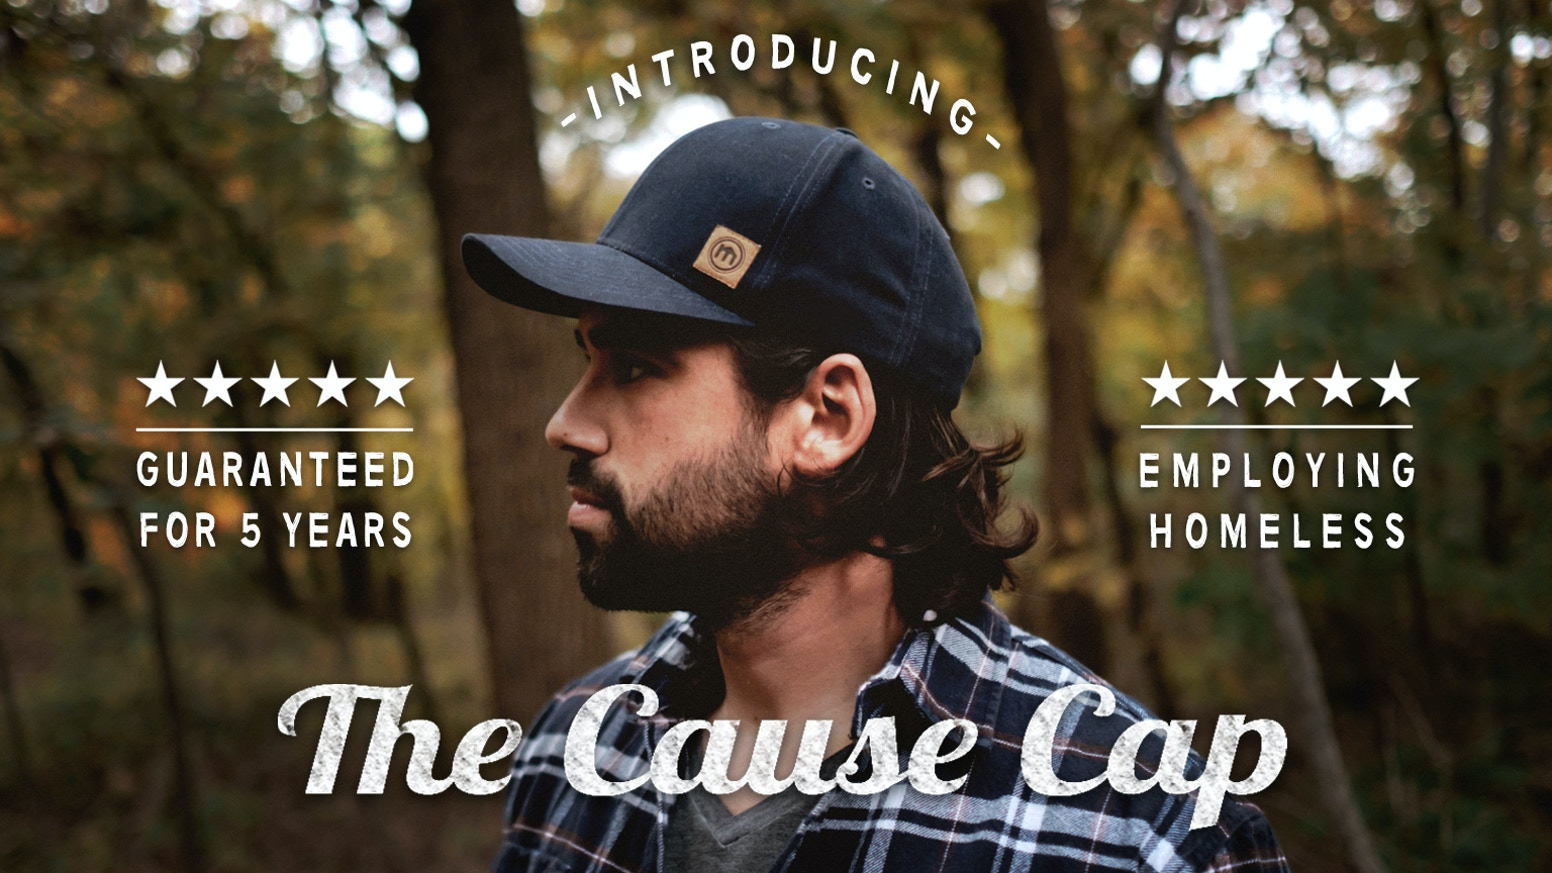 This American made cap helps employ transitioning homeless & is guaranteed for 5 years. It's the best made cap with the best mission.